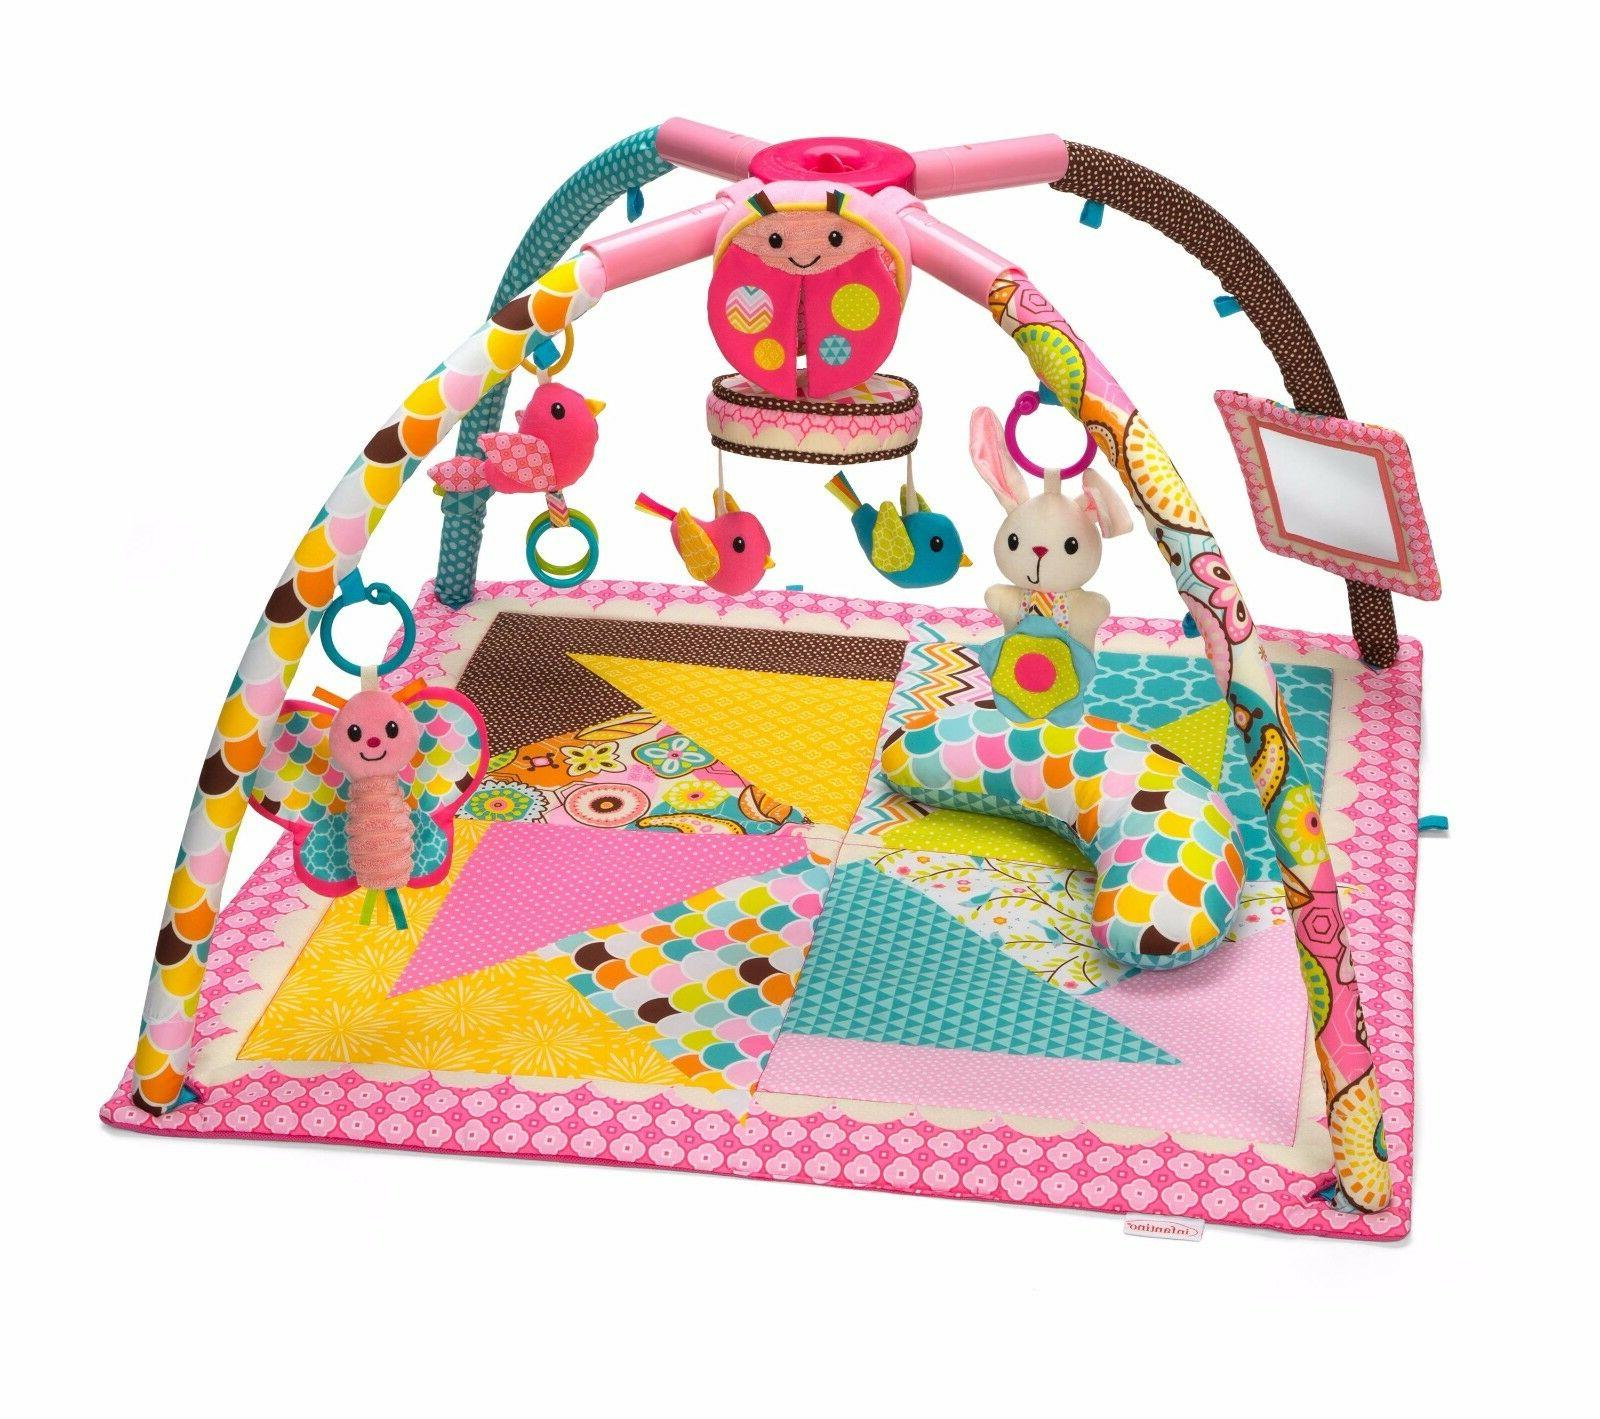 Baby Play Mats Gyms Music Infantino Go GaGa Deluxe and Fold Gym